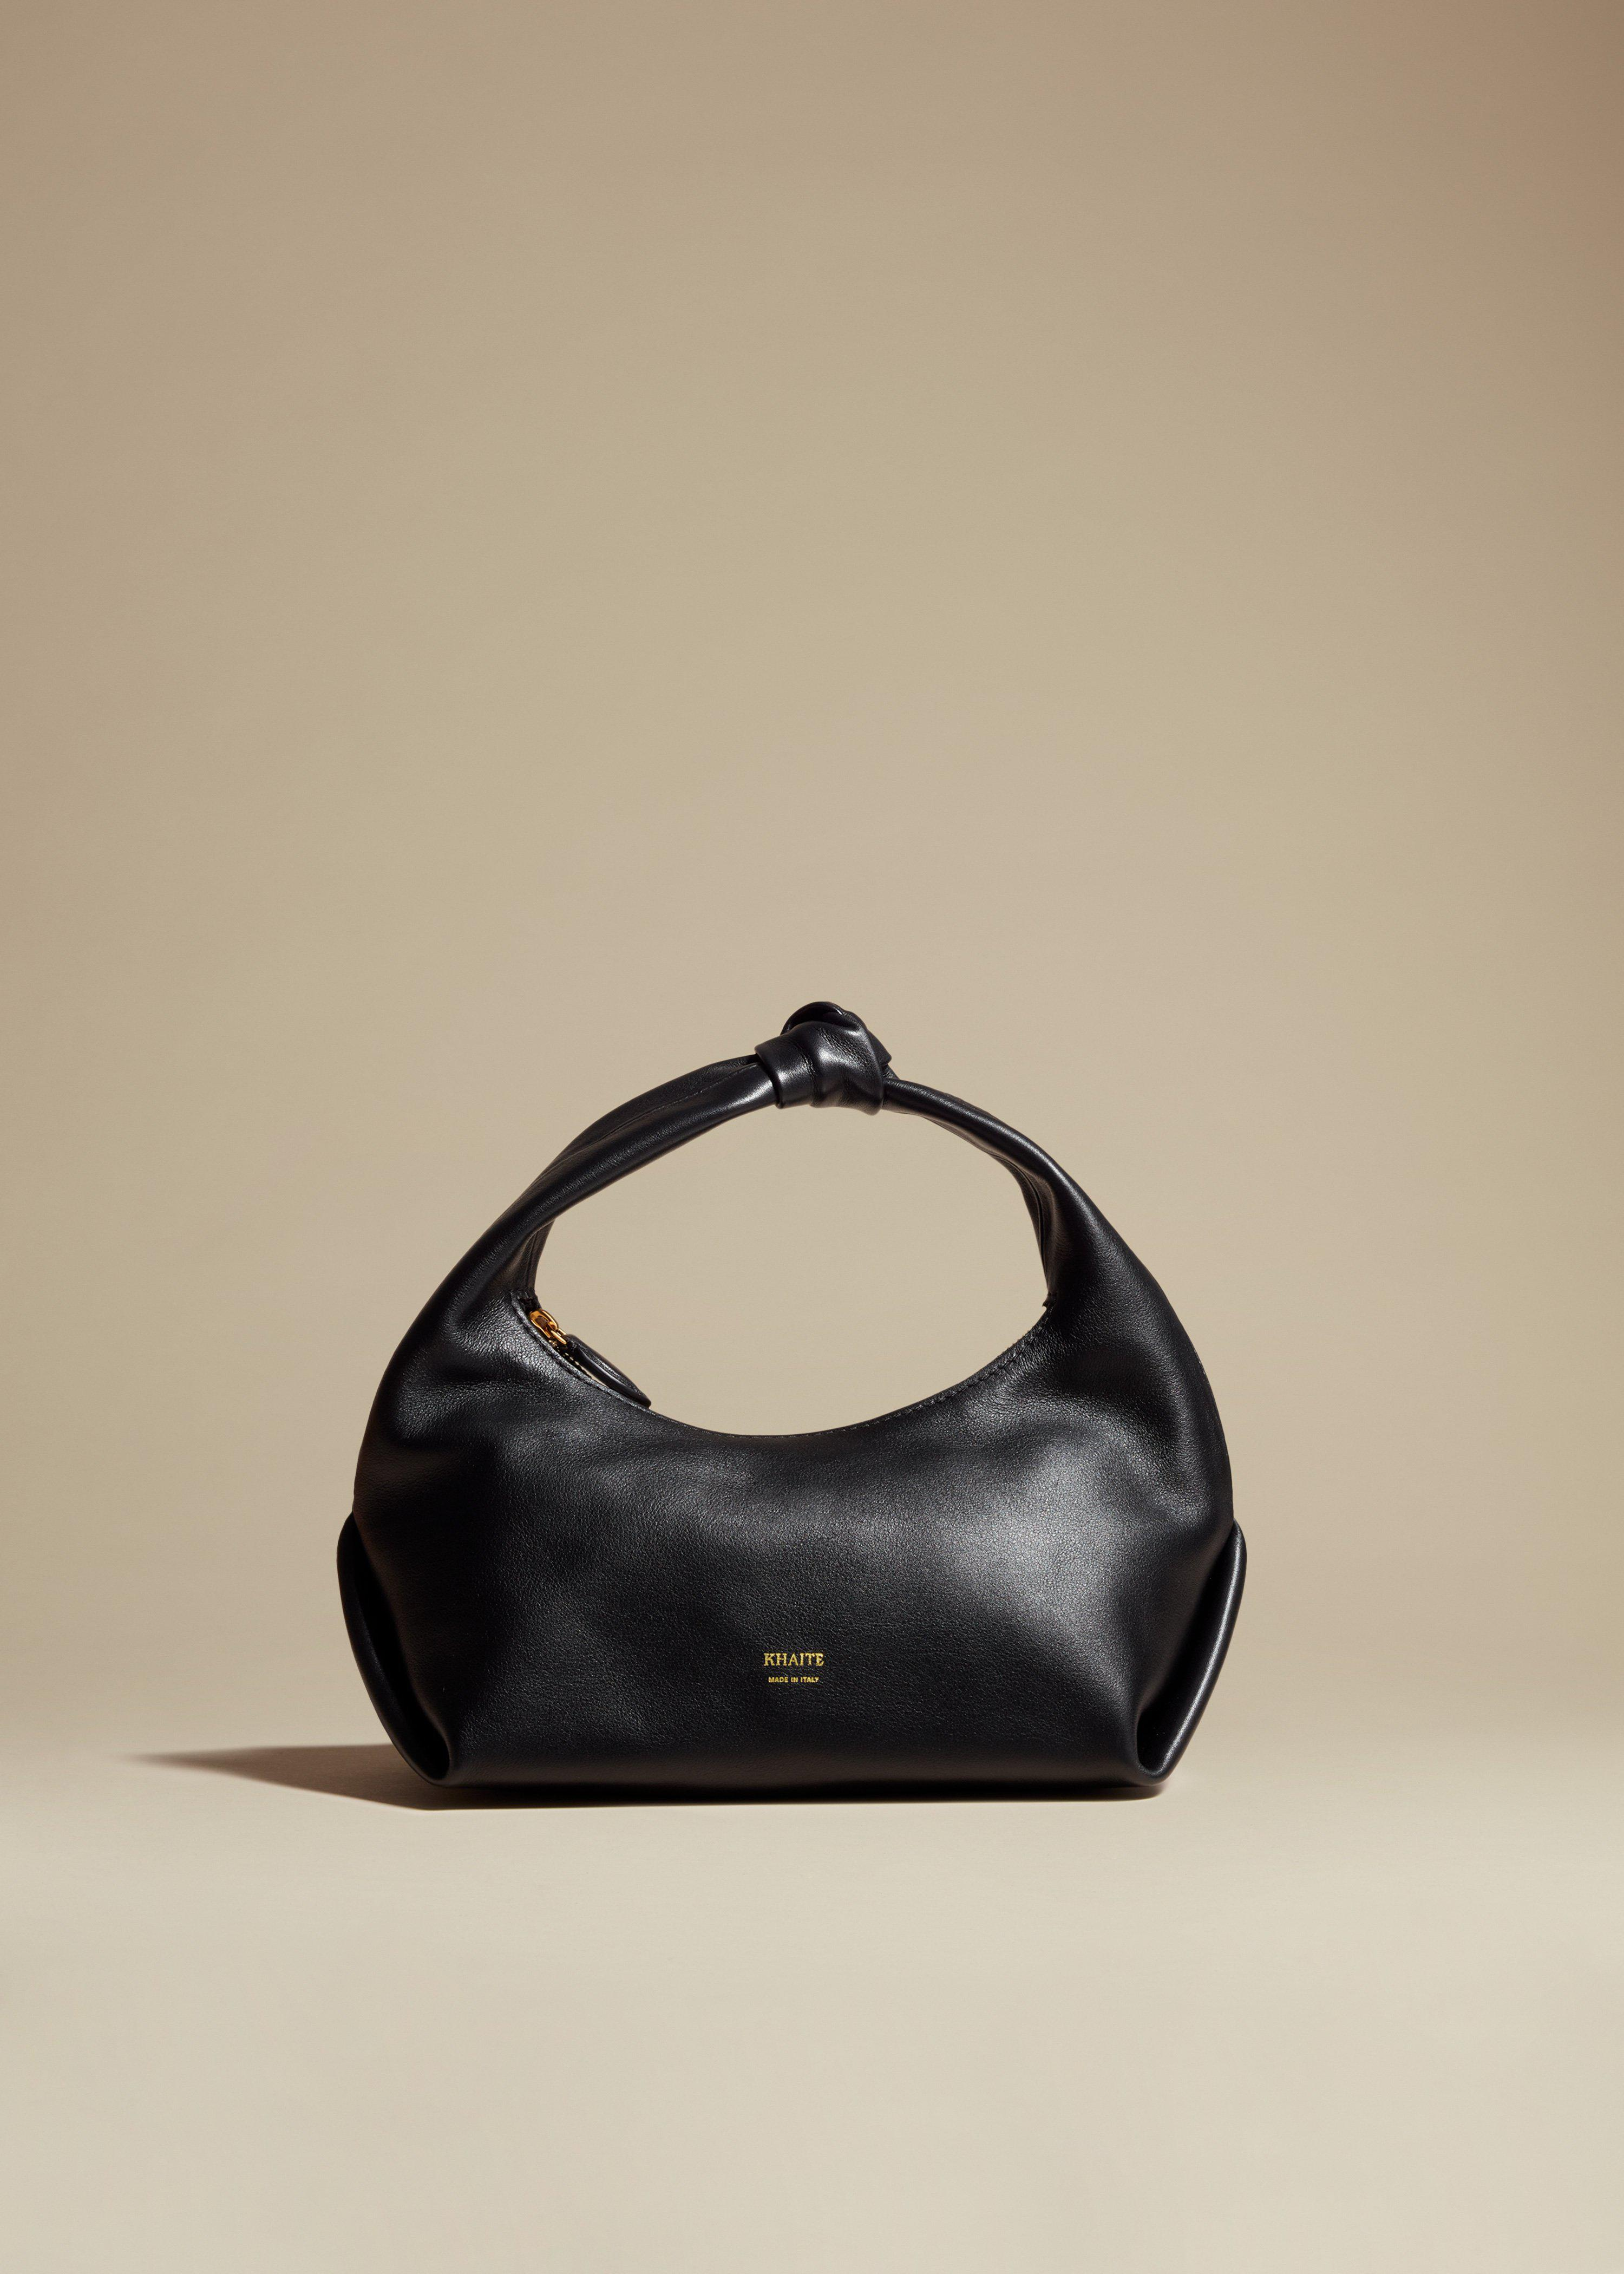 The Small Beatrice Hobo in Black Leather